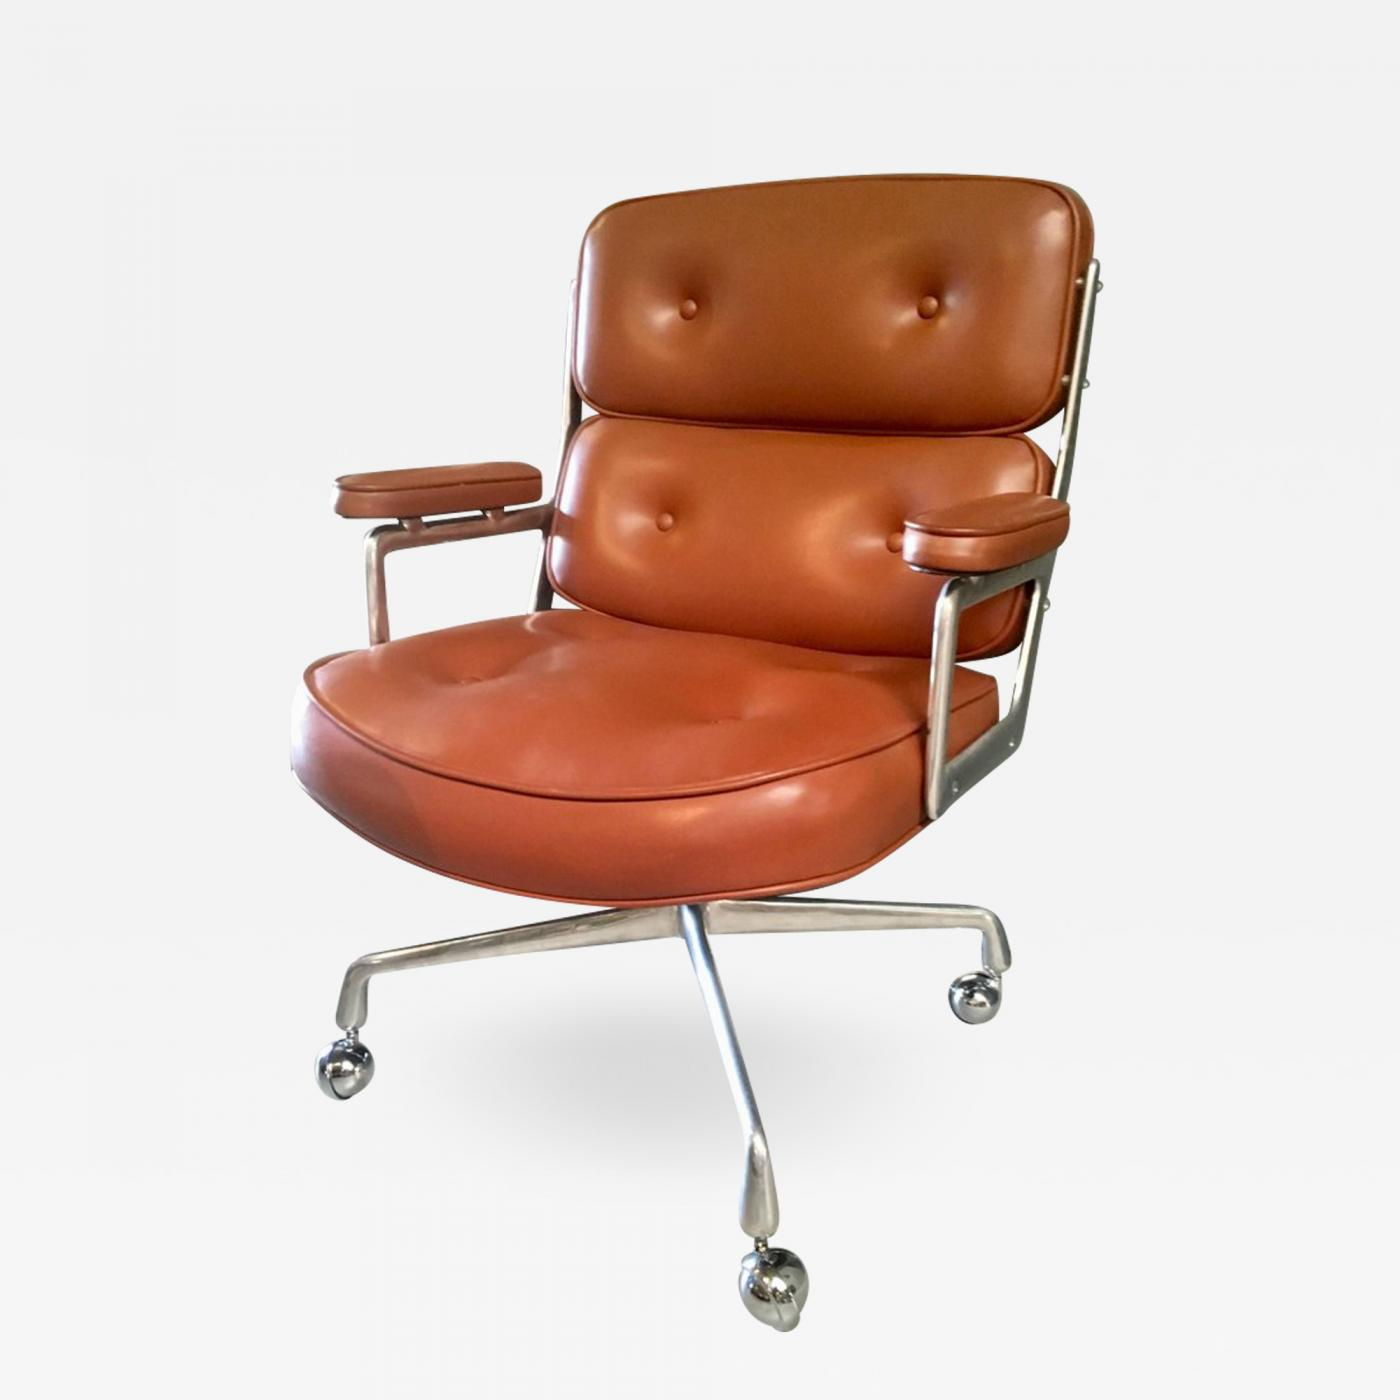 Listings / Furniture / Seating / Office Chairs